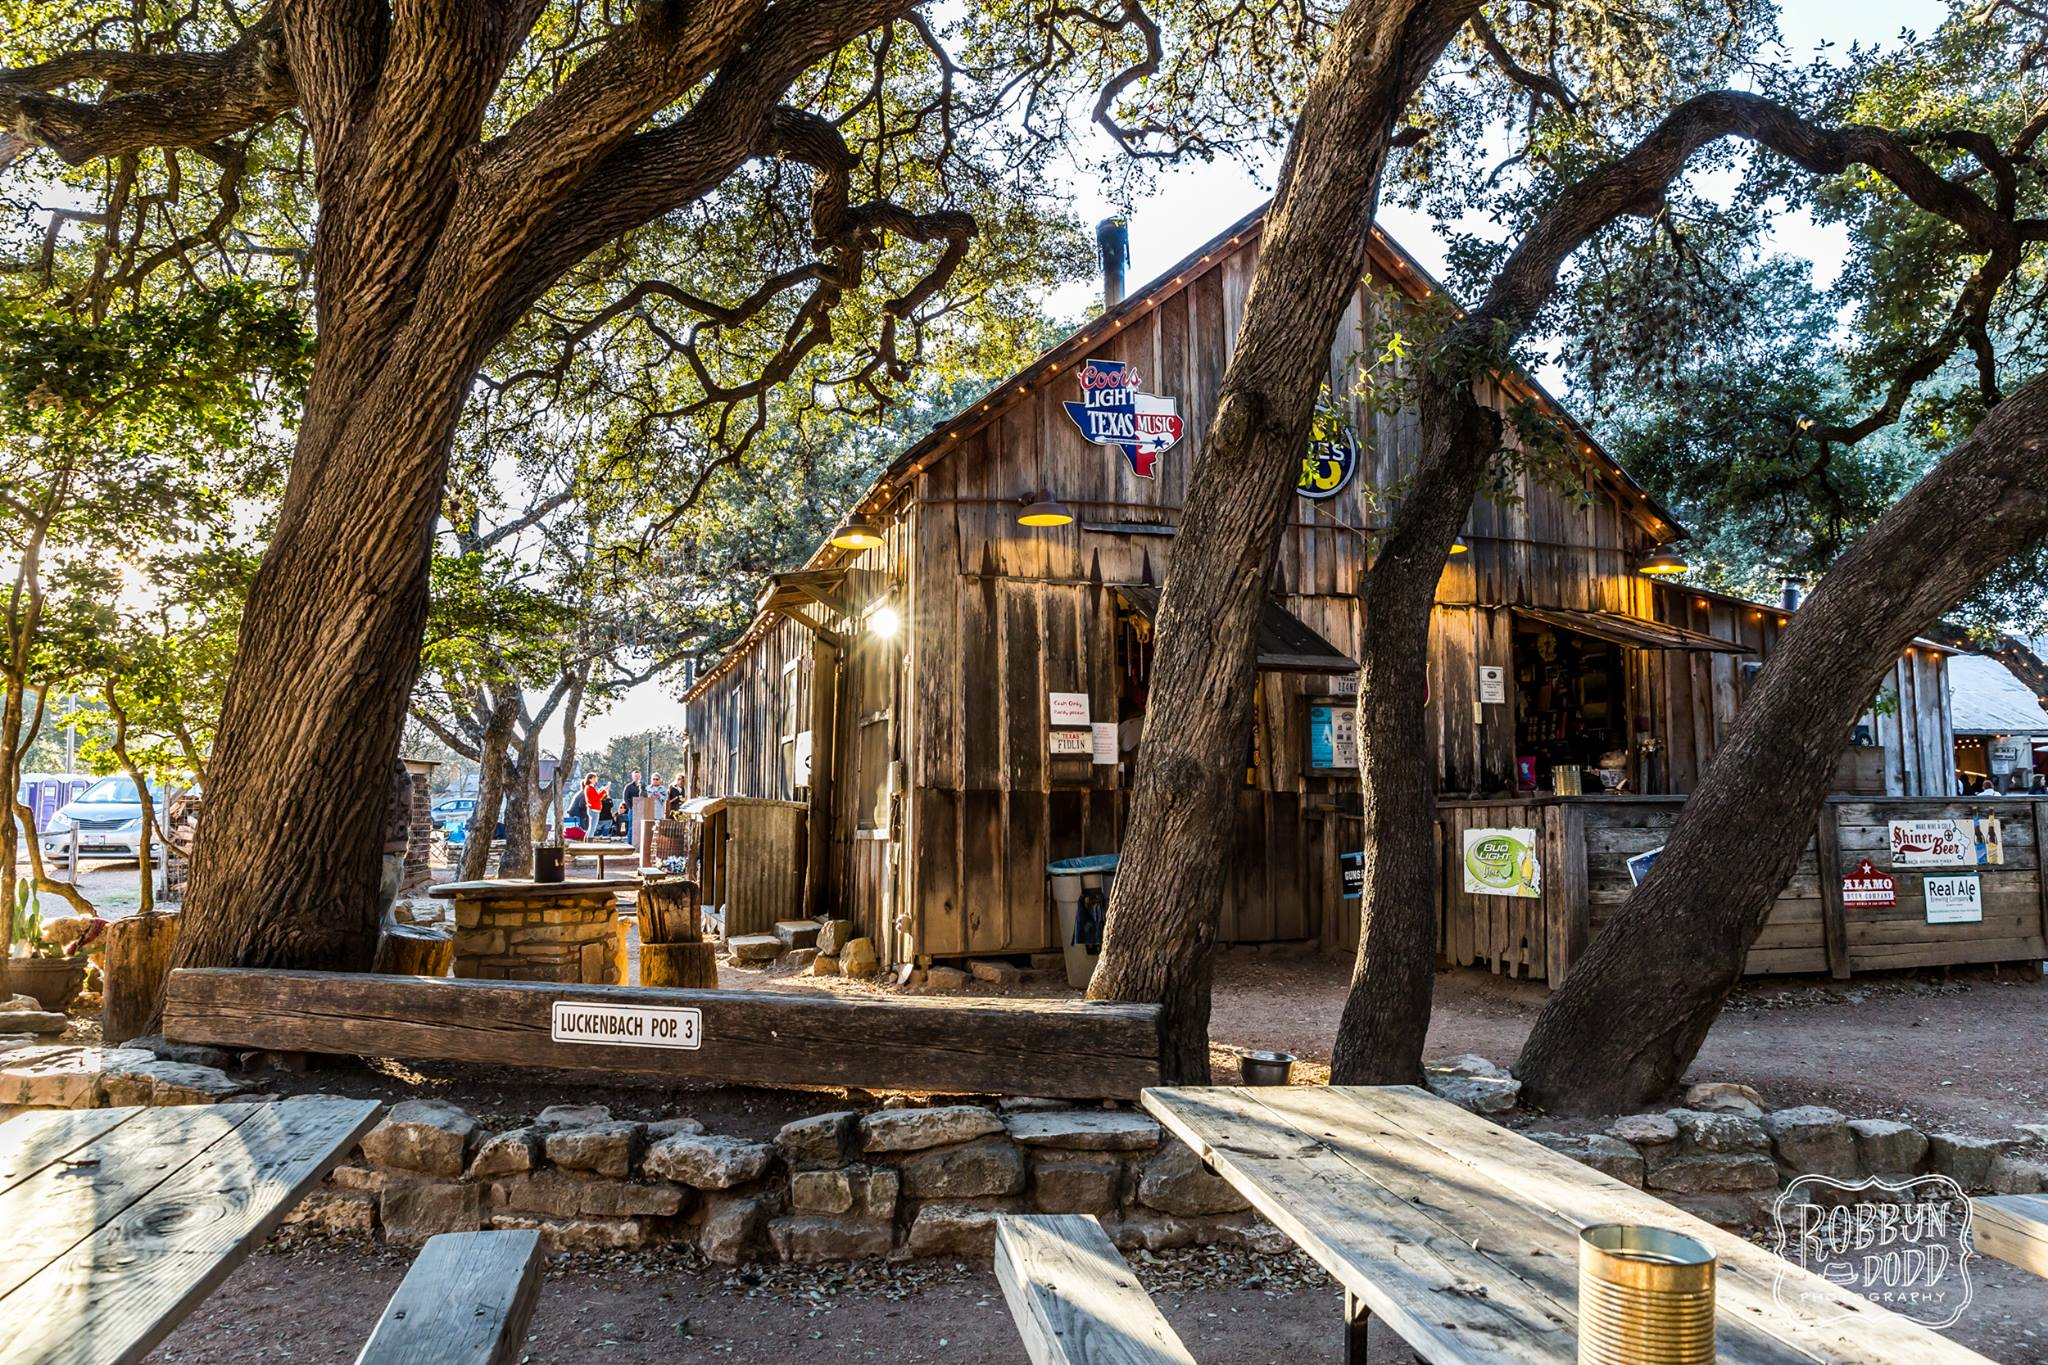 Luckenbach, Texas Map & Directions - Official MapQuest